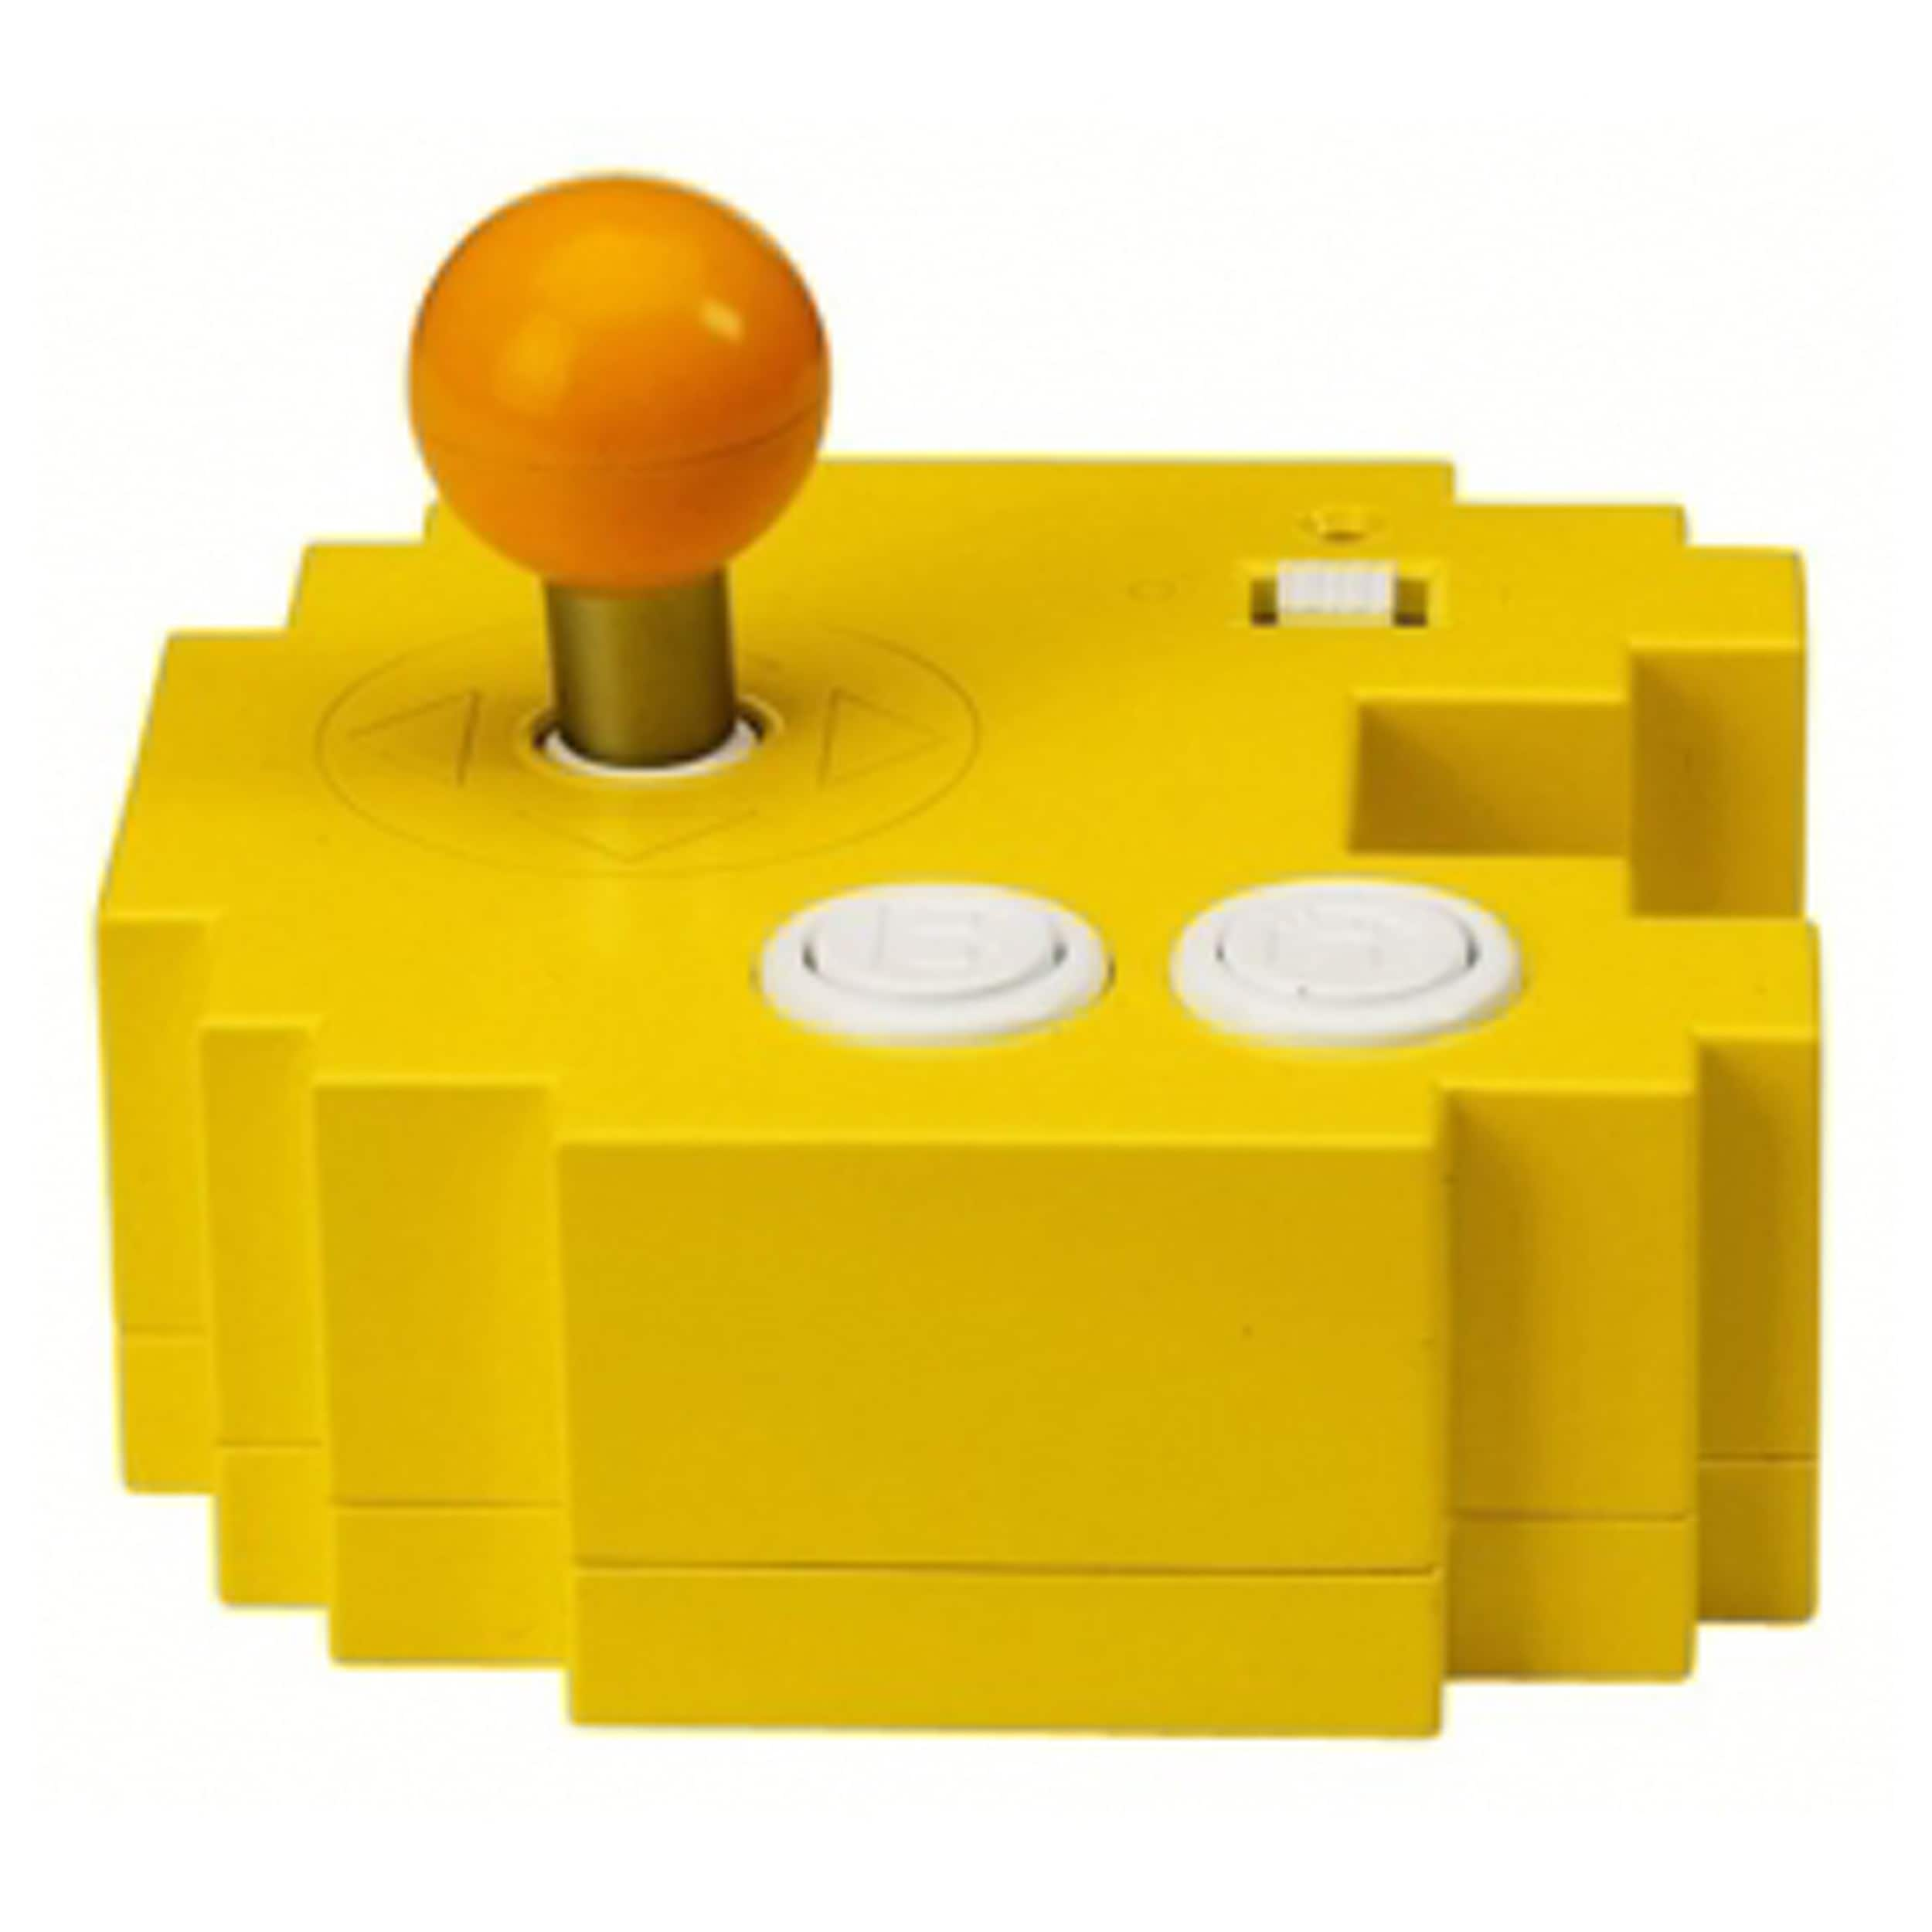 Bandai Pac-Man Connect and Play 12 Classic Games (1), Yel...